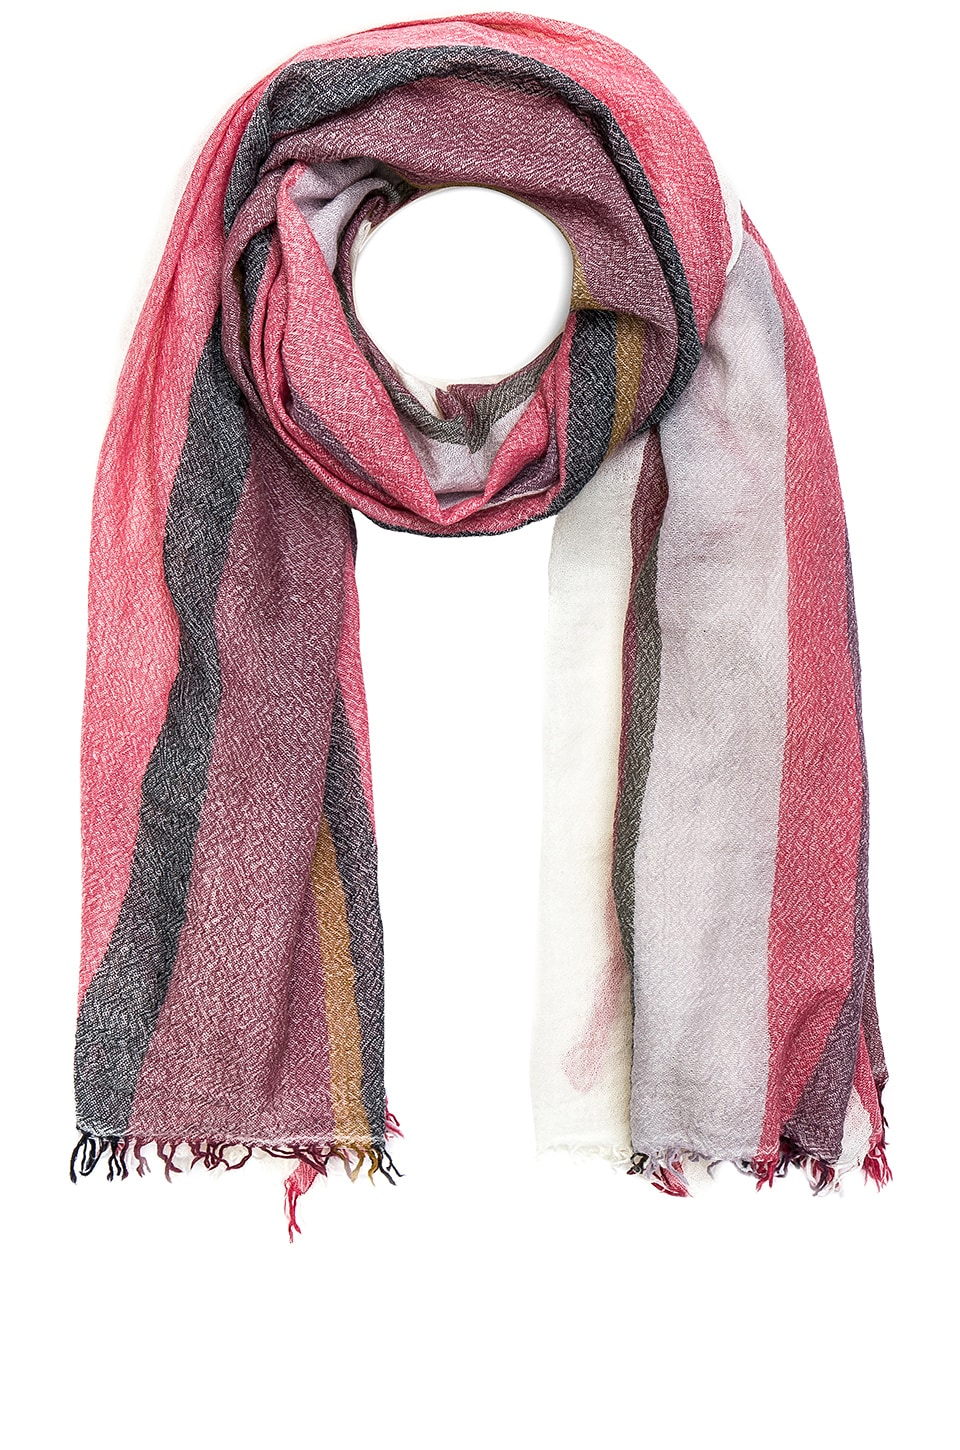 Rag & Bone Nassau Scarf in Ivory Multi